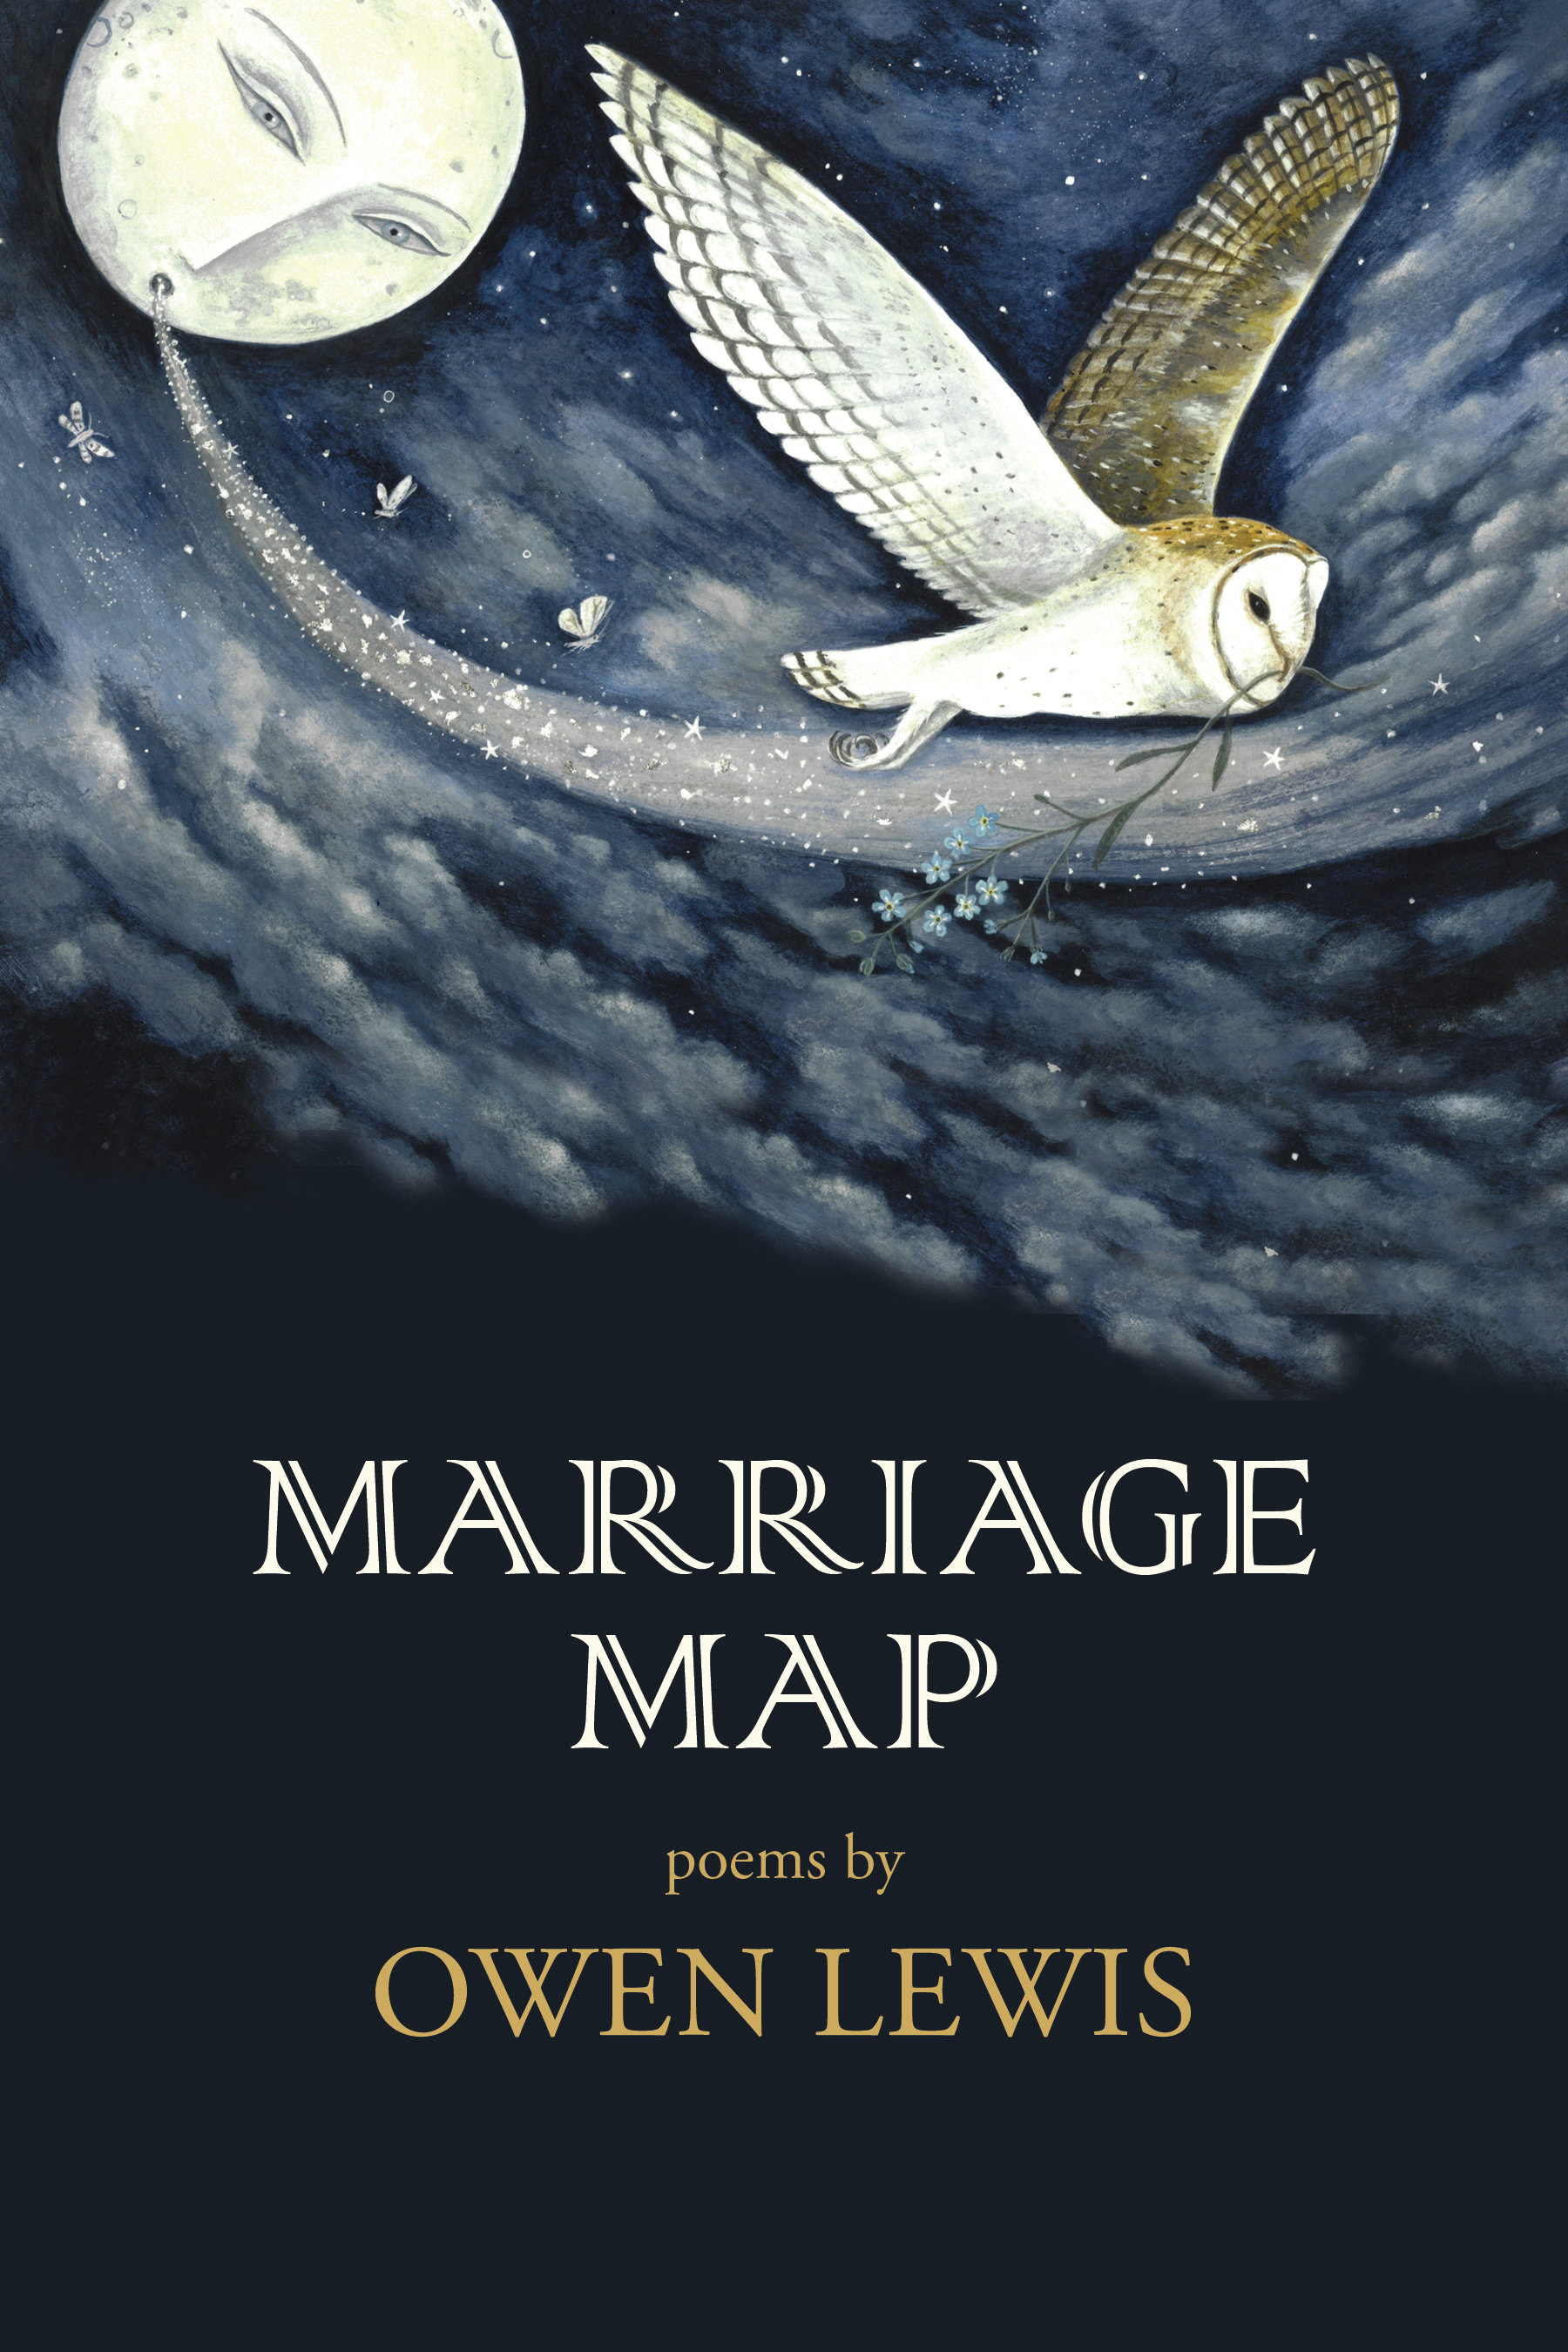 Marriage Map by Owen Lewis on love wins map, modernism map, sovereignty map, food issues map, stages of life map, 9gag map, new moon map, numerology map, heredity map, inbreeding map, long trip map, doctrine map, middle class map, life calling map, lawyers map, addiction map, metaphysical map, family interaction map, birth control map,